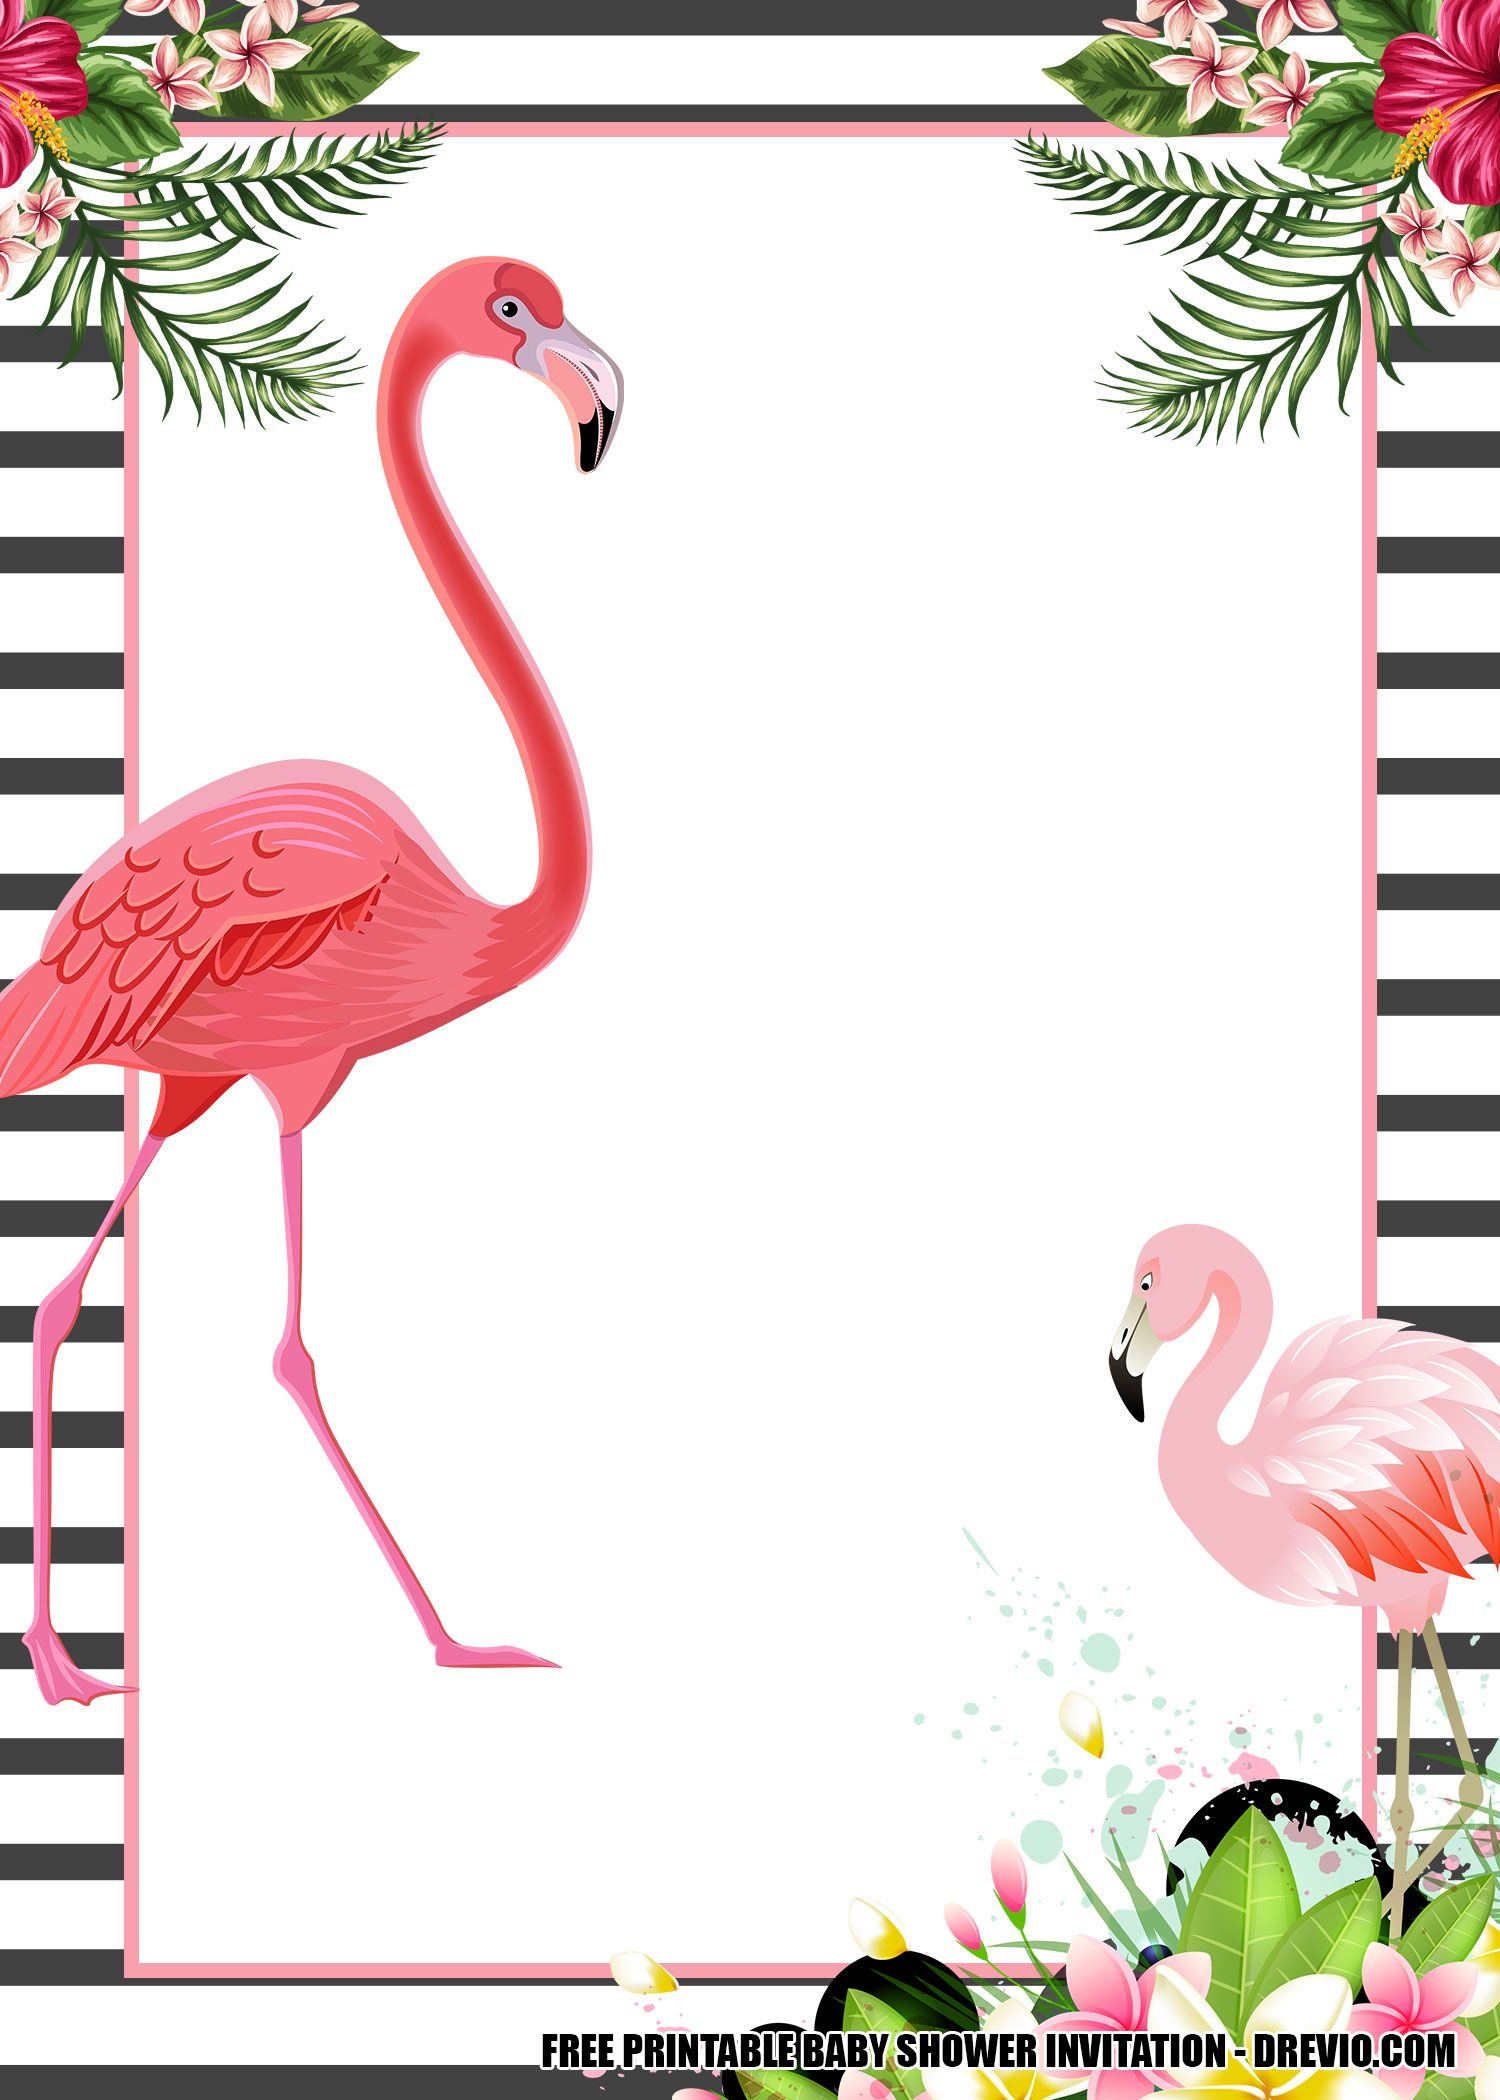 4+ FREE Flamingo Invitations Templates - Downloadable - for ANY